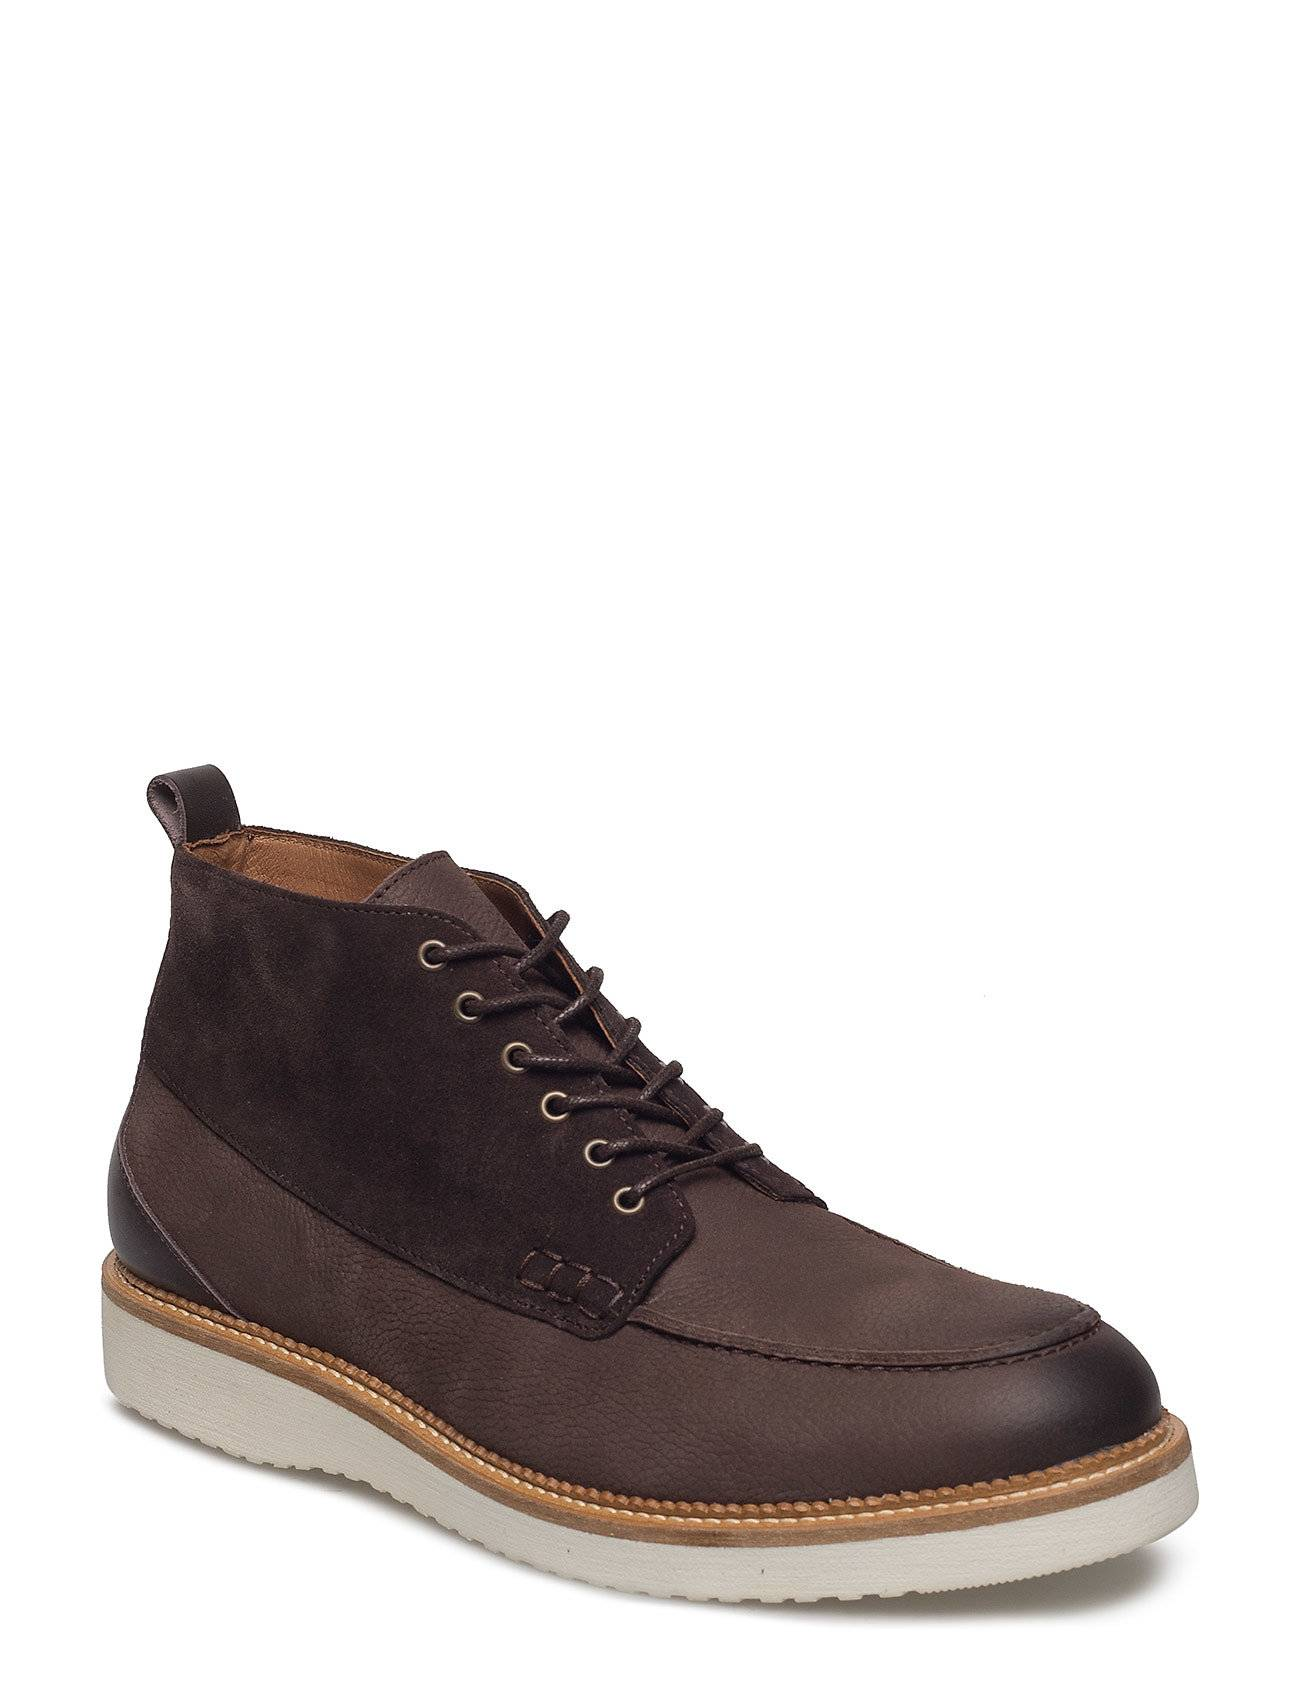 Selected Homme Shhrud Chukka Mix Boot